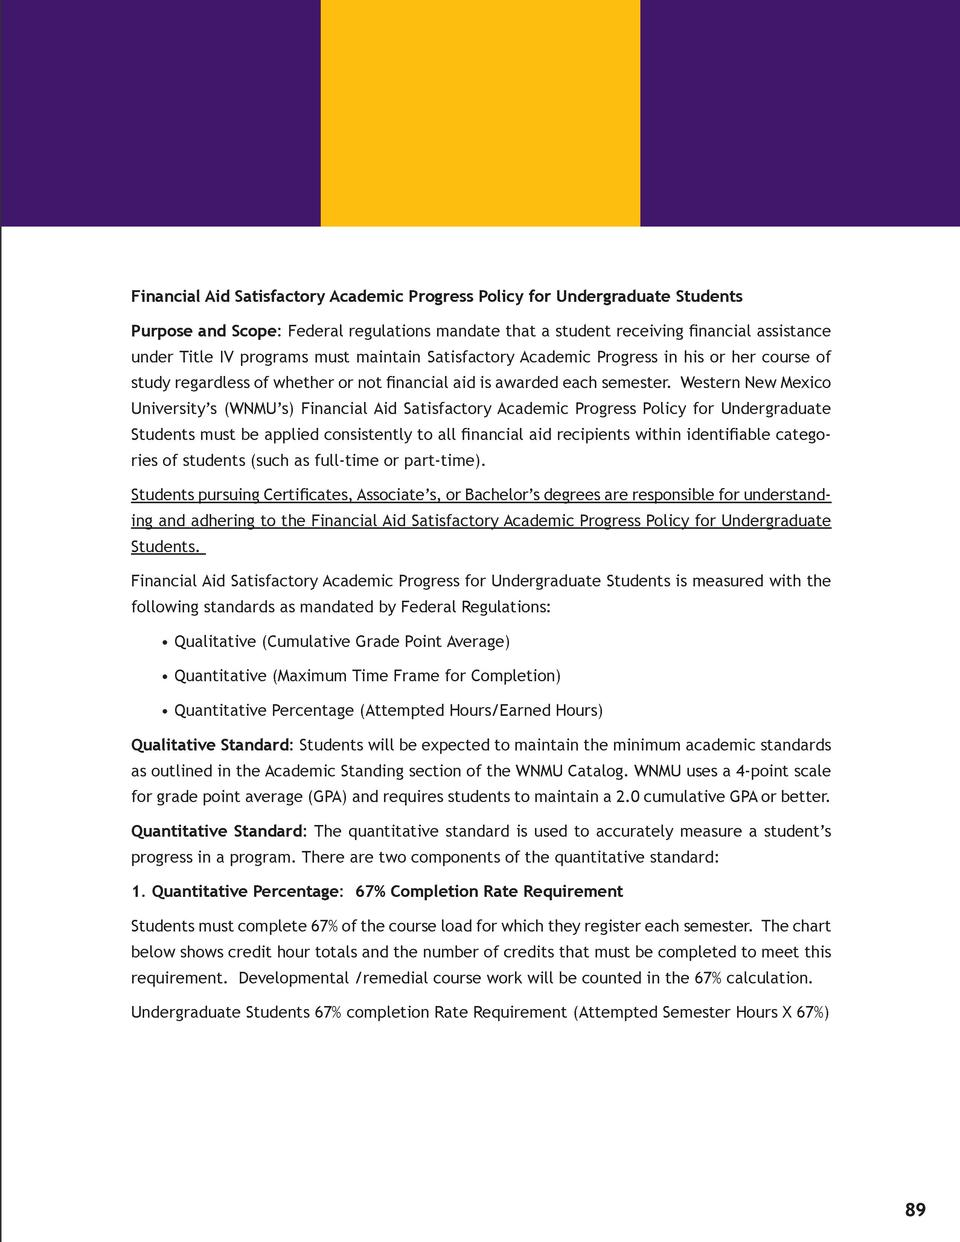 Financial Aid Satisfactory Academic Progress Policy for Undergraduate Students Purpose and Scope  Federal regulations mand...